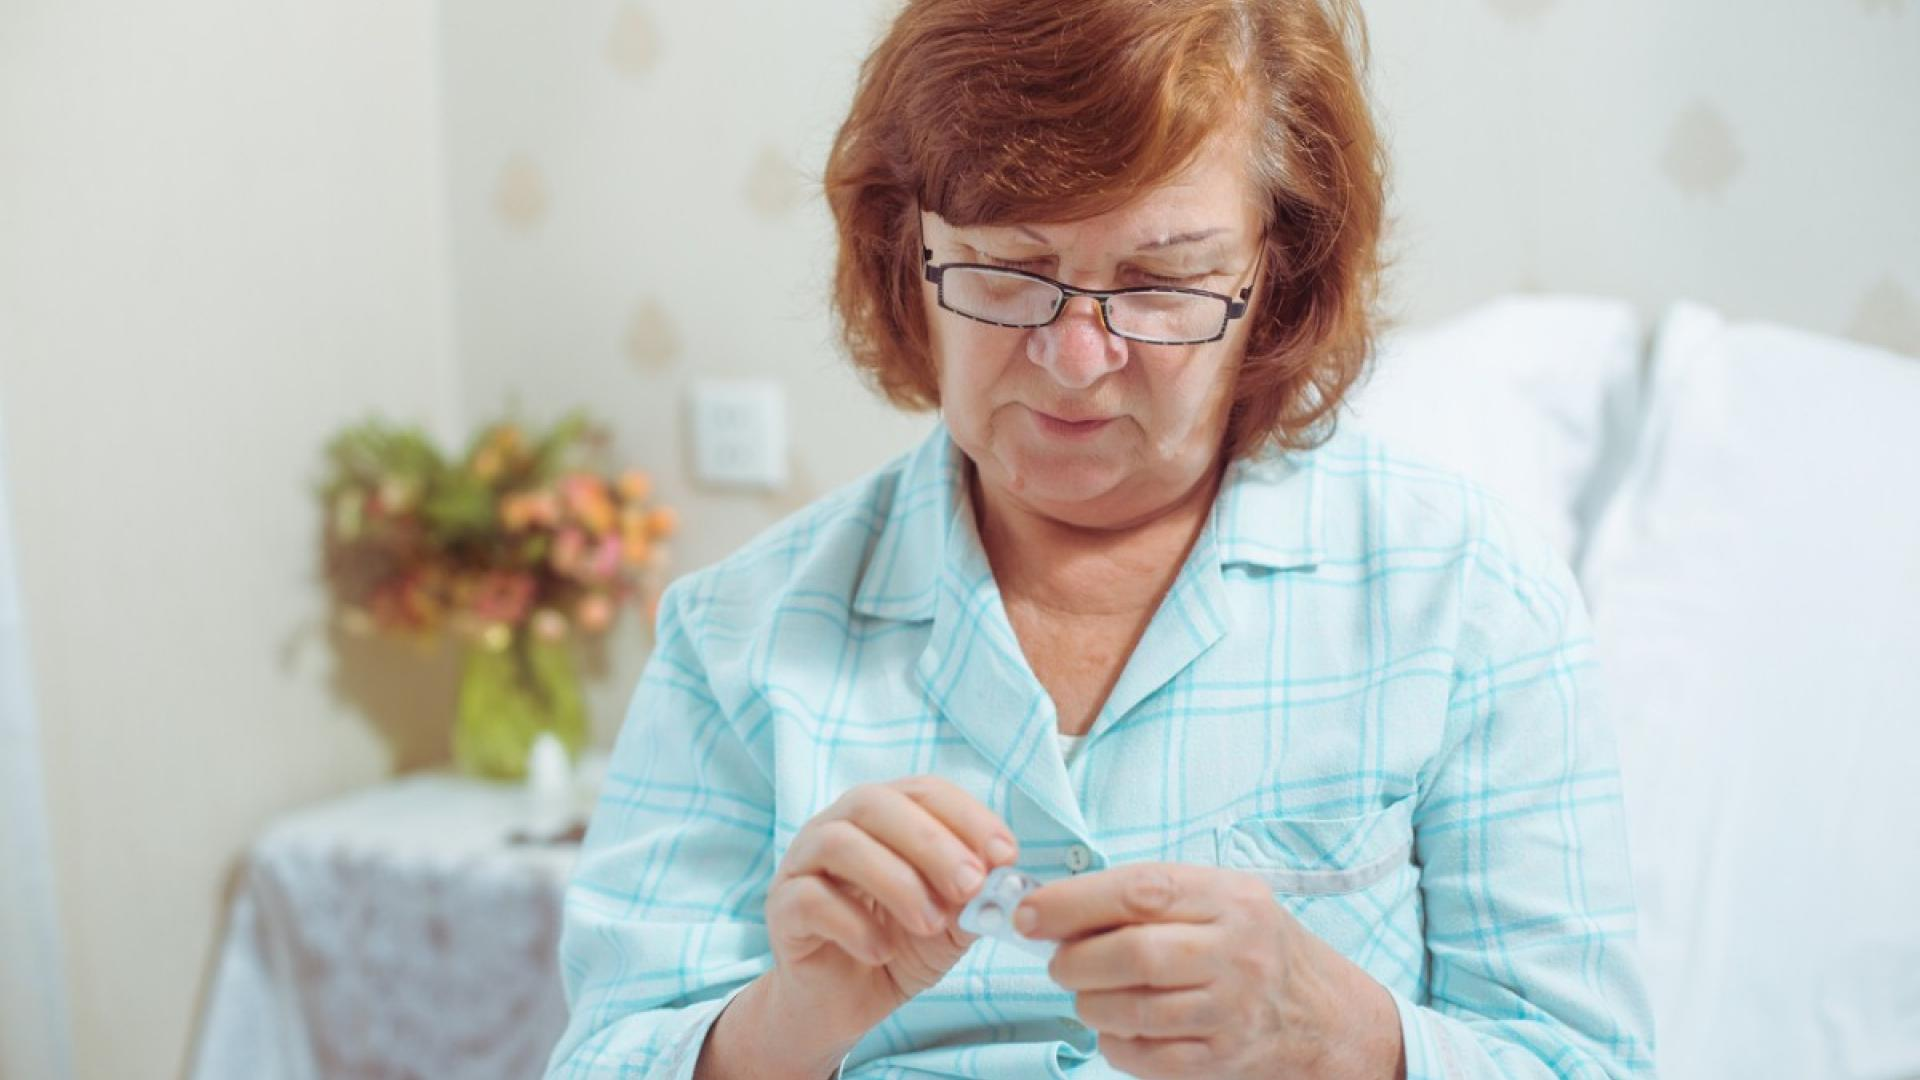 Dementia cure less than 10 years away, claim experts